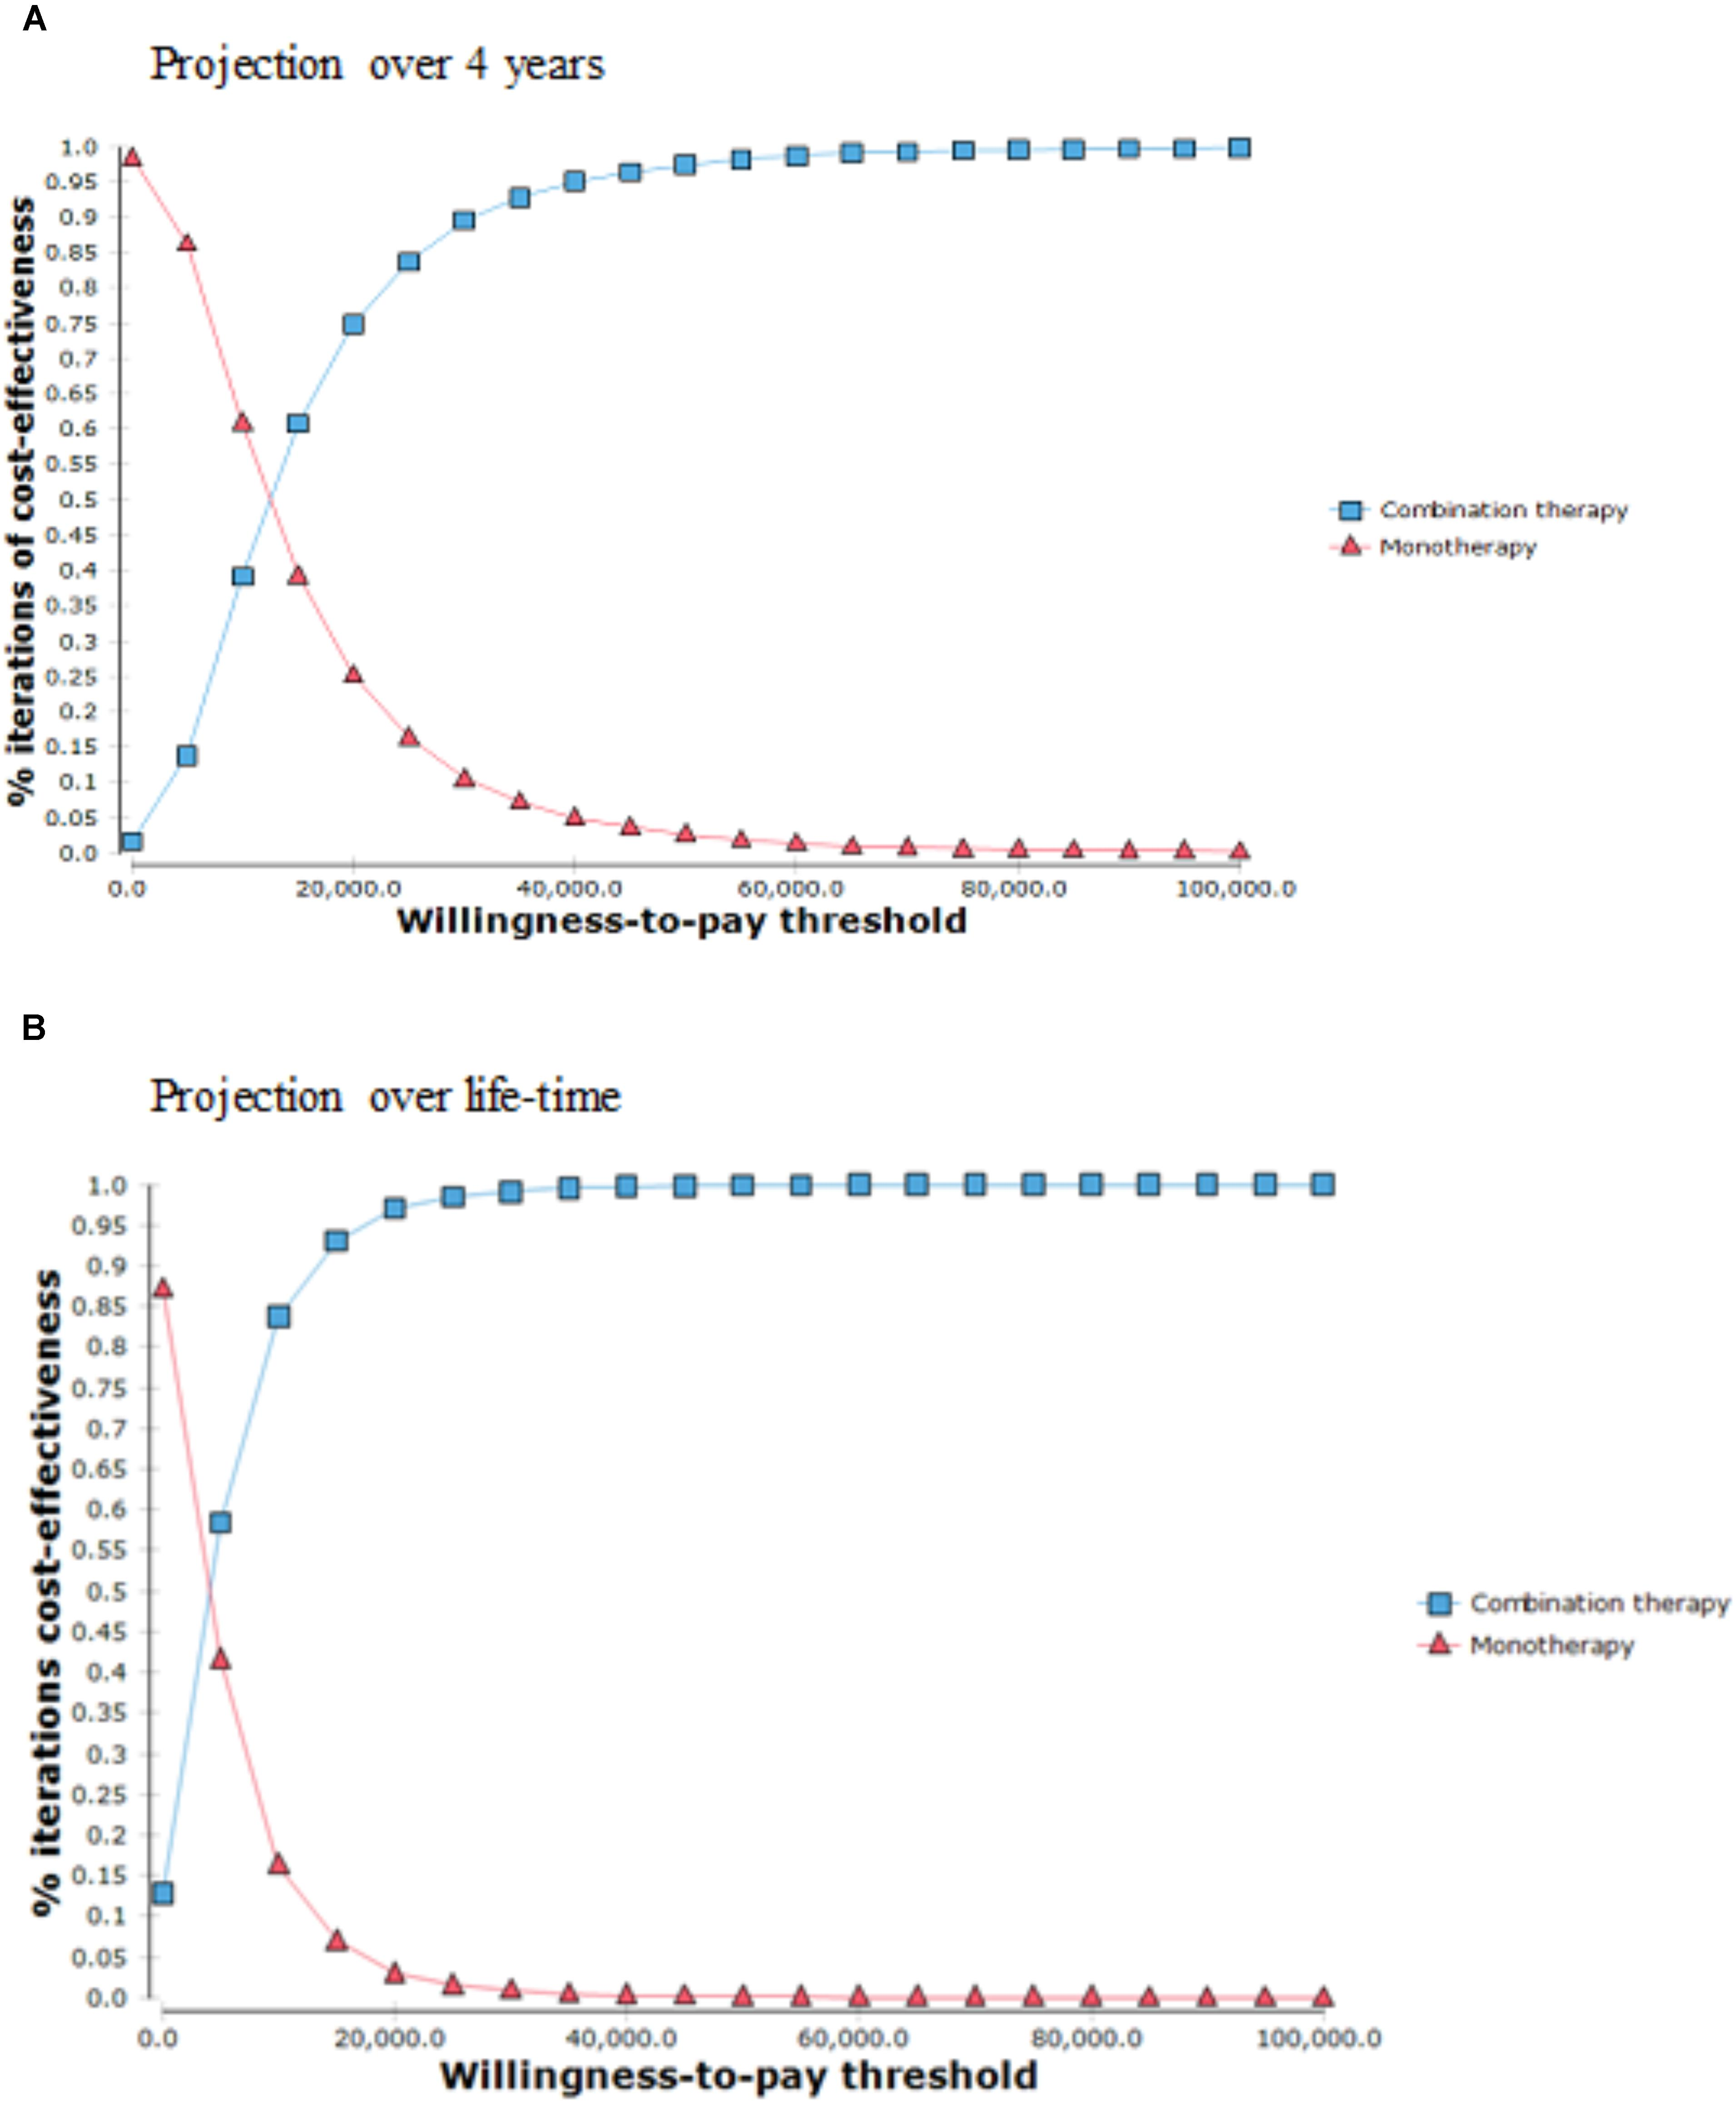 Frontiers Economic Evaluation Of Combination Therapy Versus Monotherapy For Treatment Of Benign Prostatic Hyperplasia In Hong Kong Pharmacology